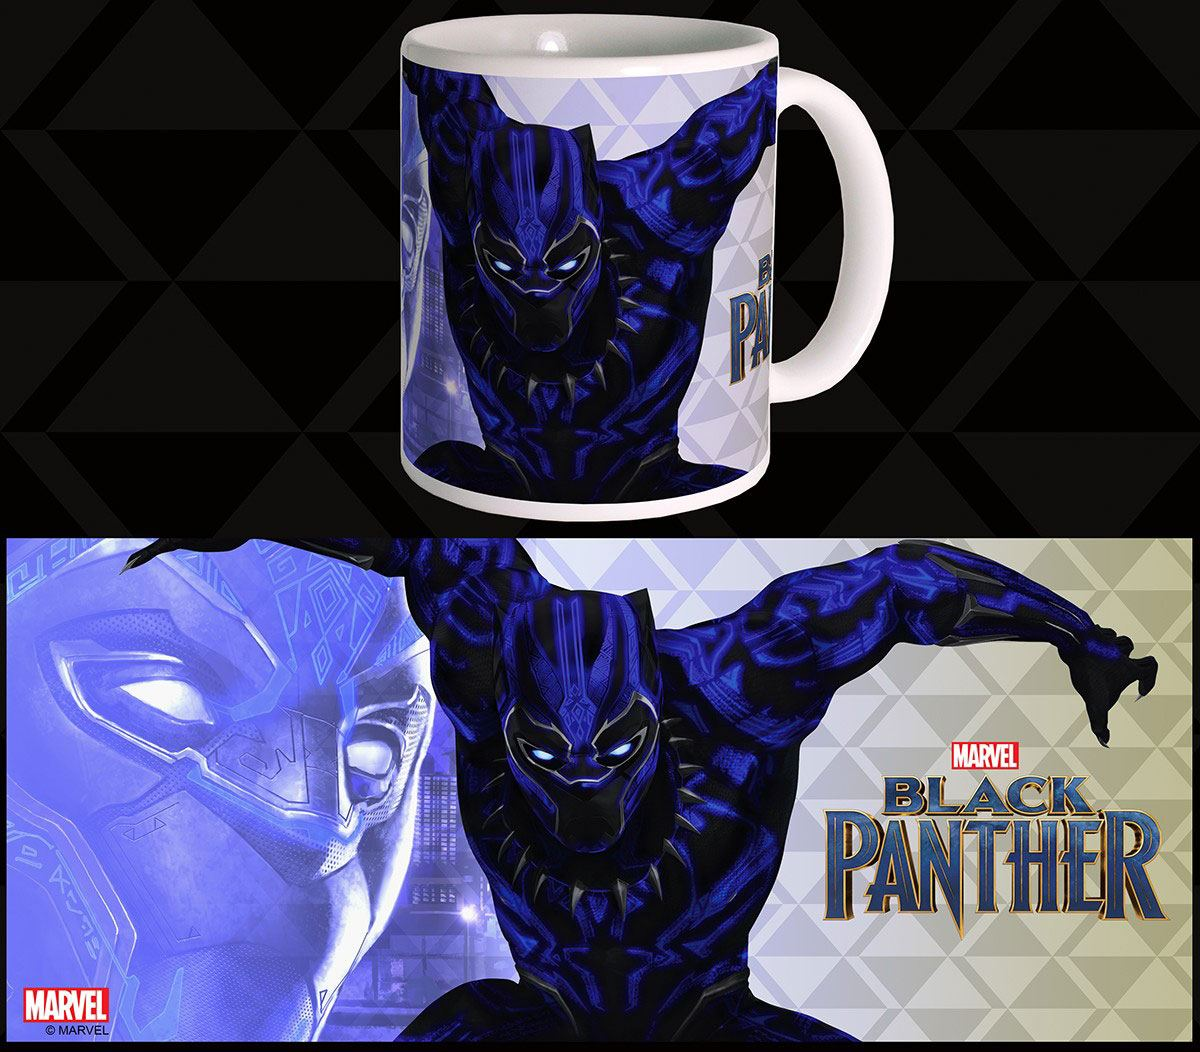 Black Panther Mug War Suit